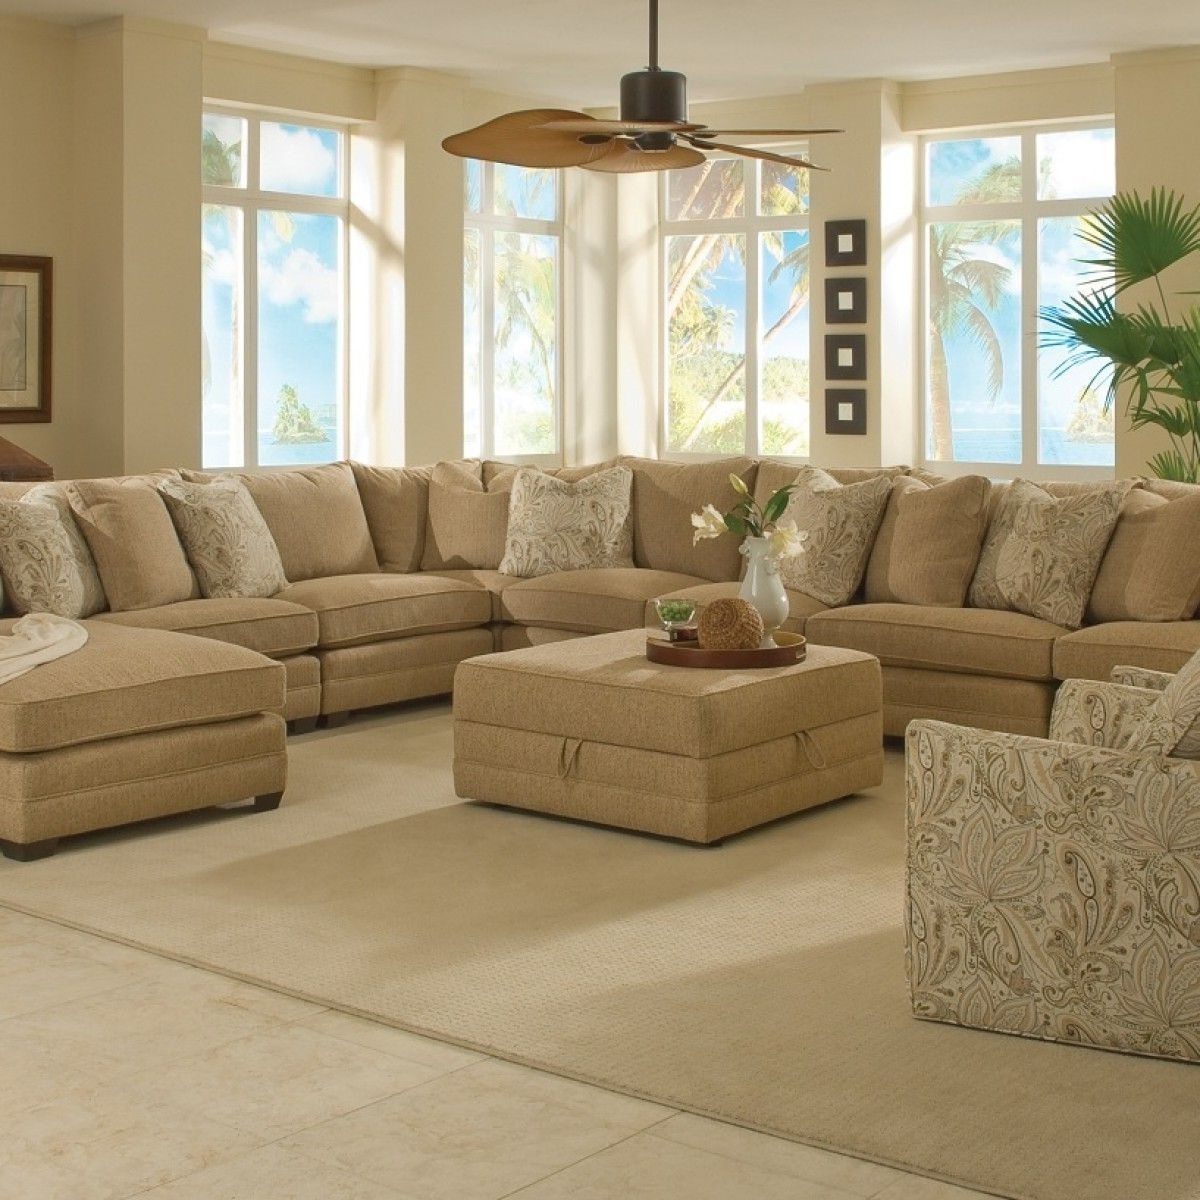 Gallery Furniture Sectional Sofas Throughout Famous Magnificent Large Sectional Sofas (Gallery 15 of 20)